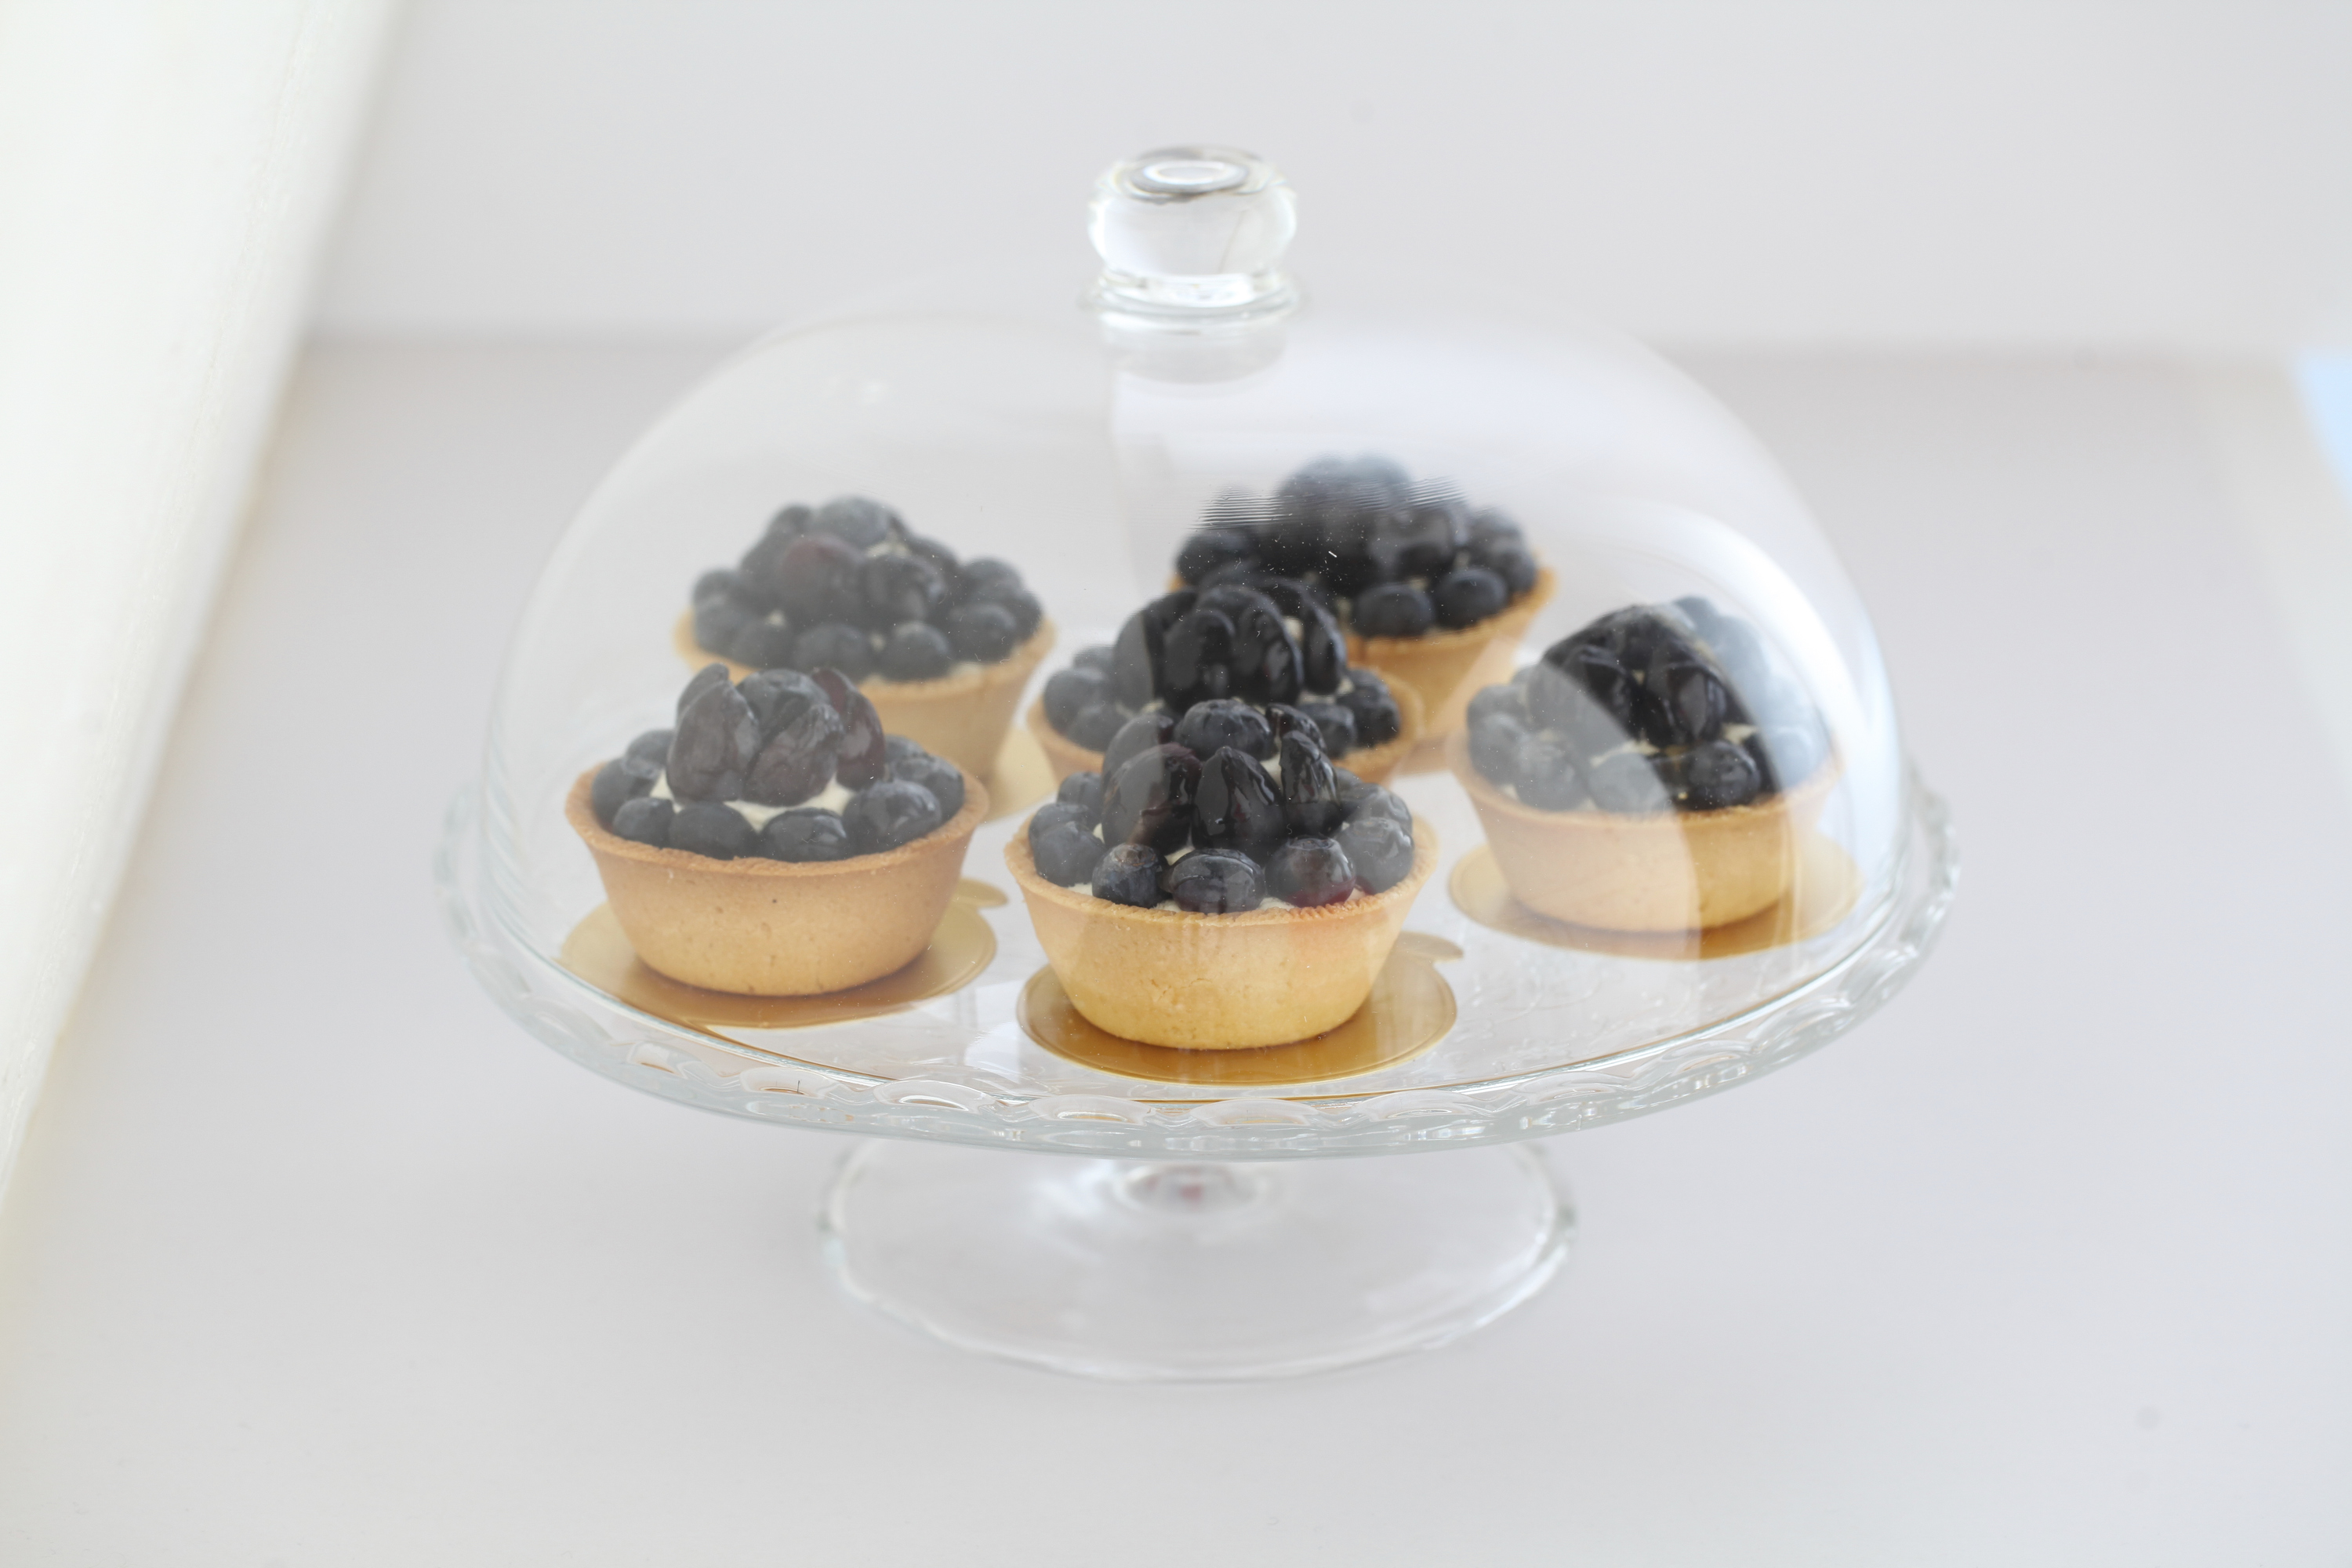 Blueberry tarts and serving stand